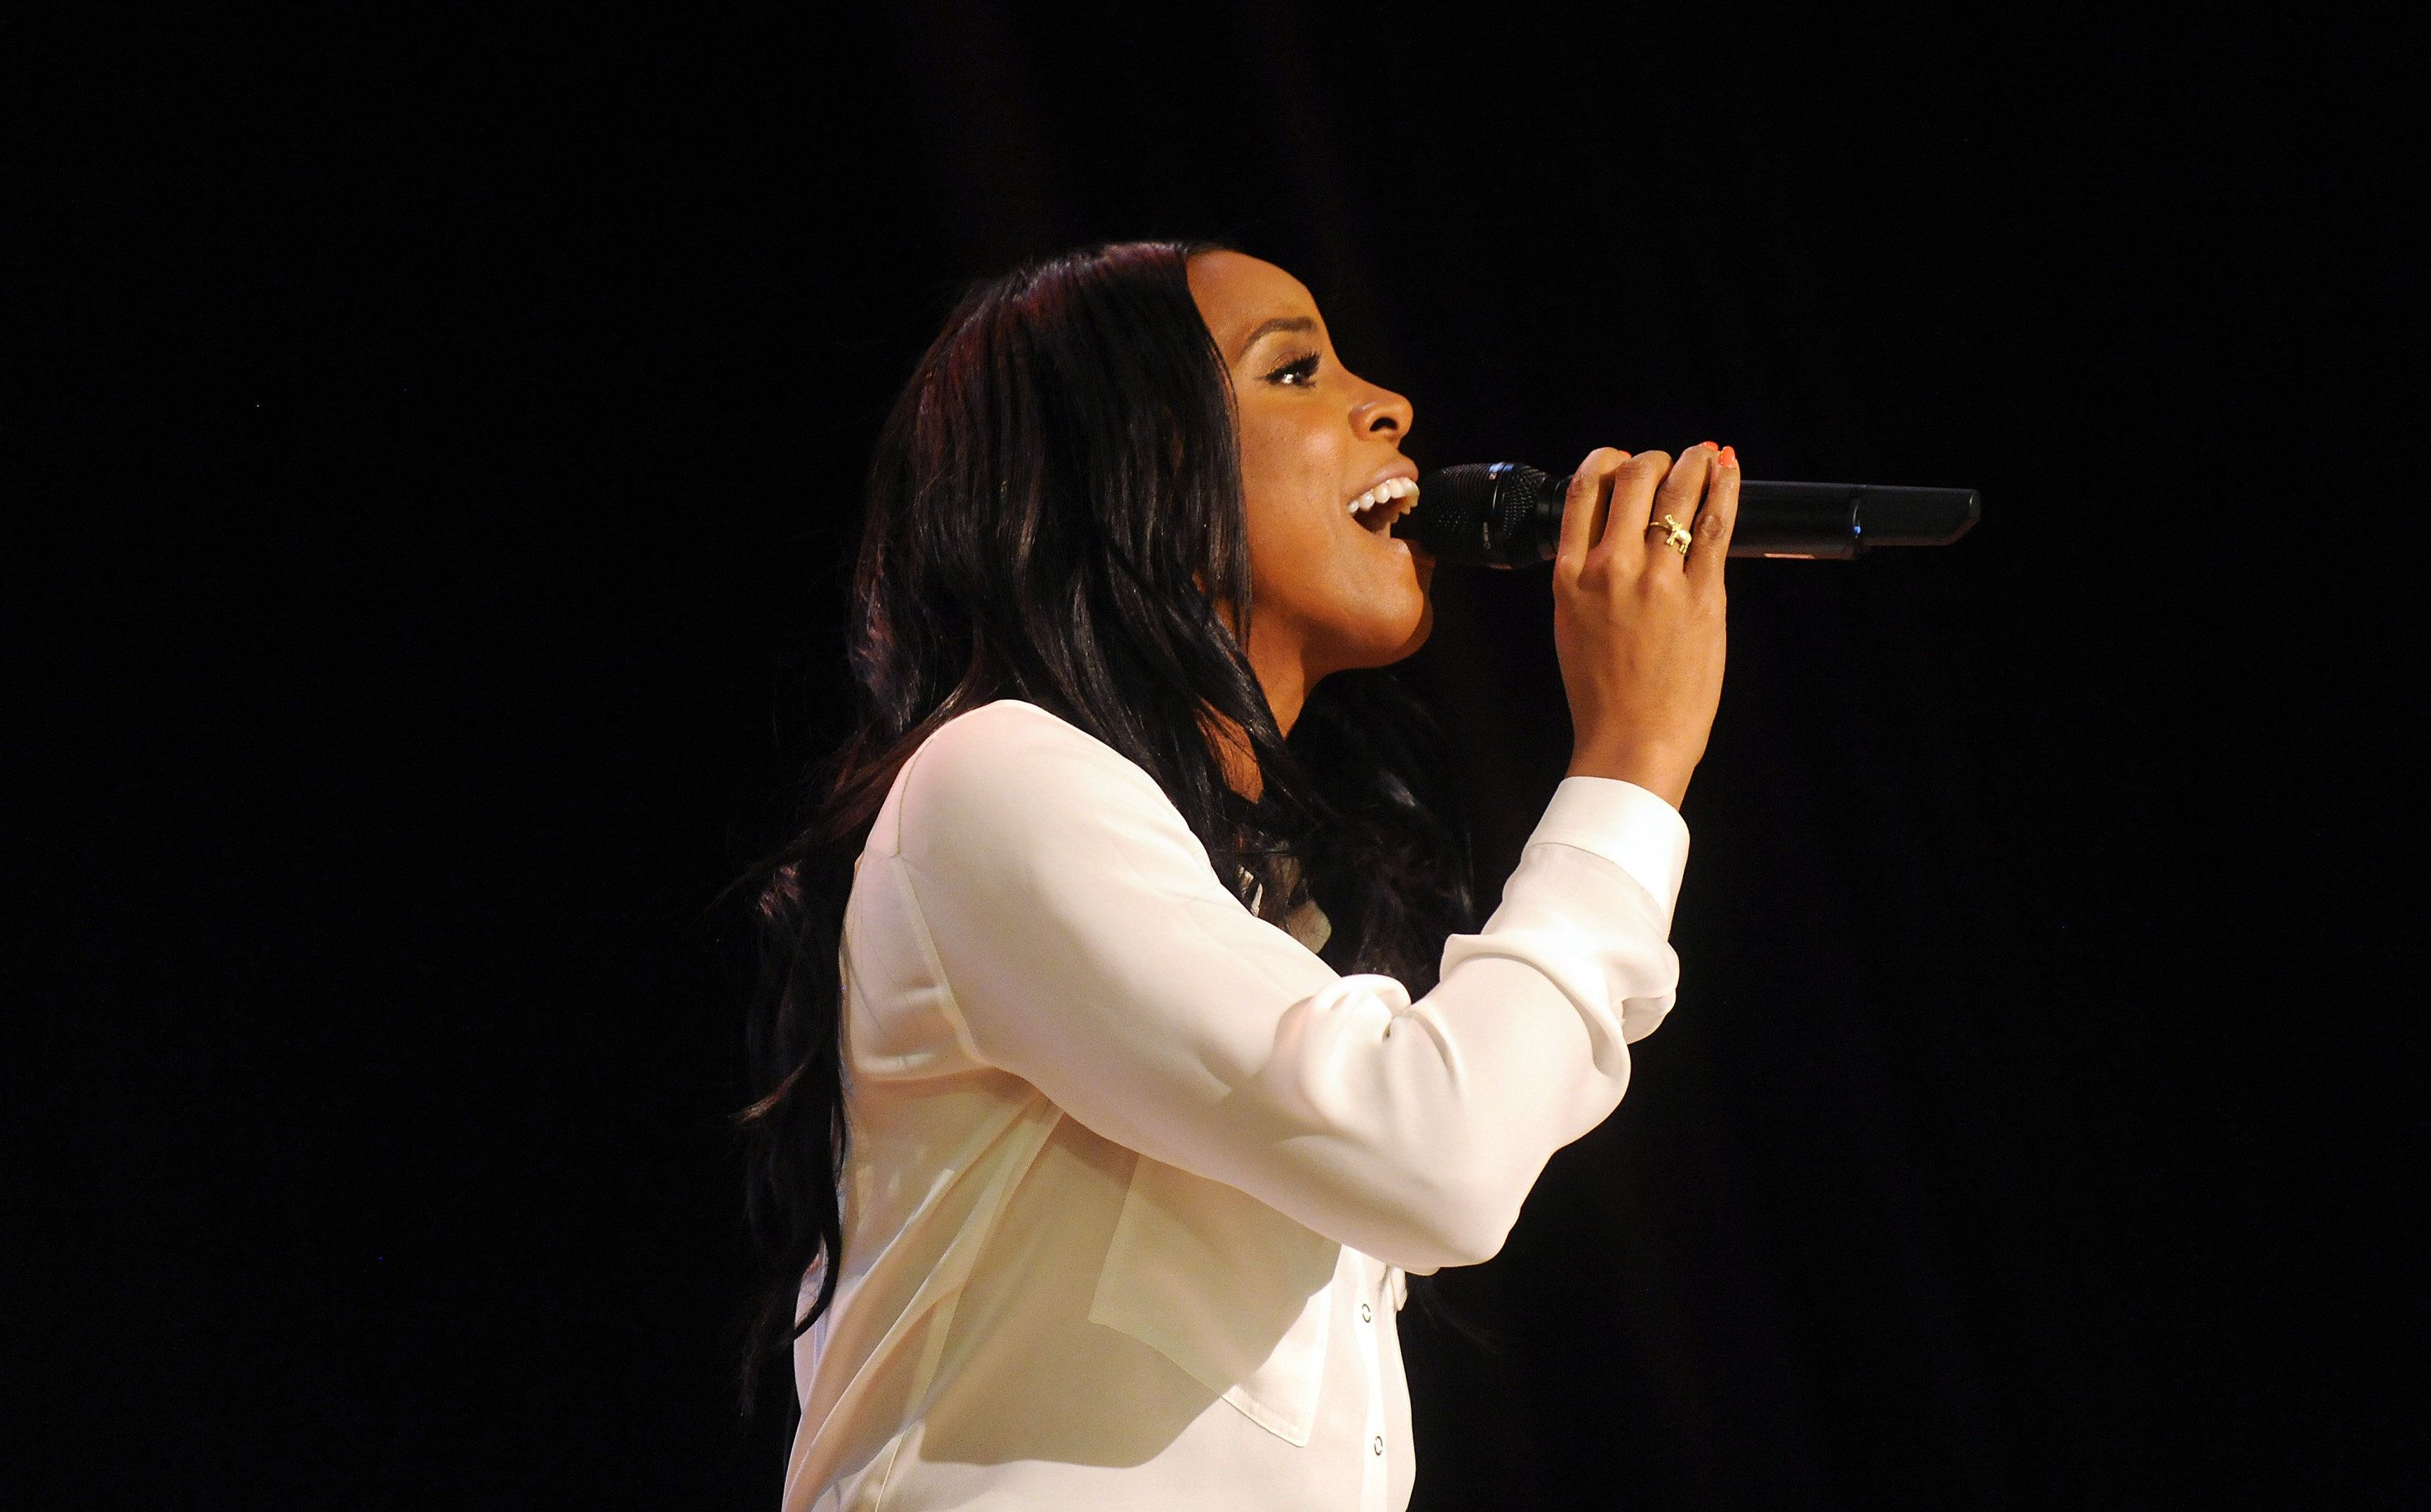 Kelly Rowland performs during Claritin and Boys & Girls Clubs eventat PS 64 on March 21, 2016 in New York City. (Ph